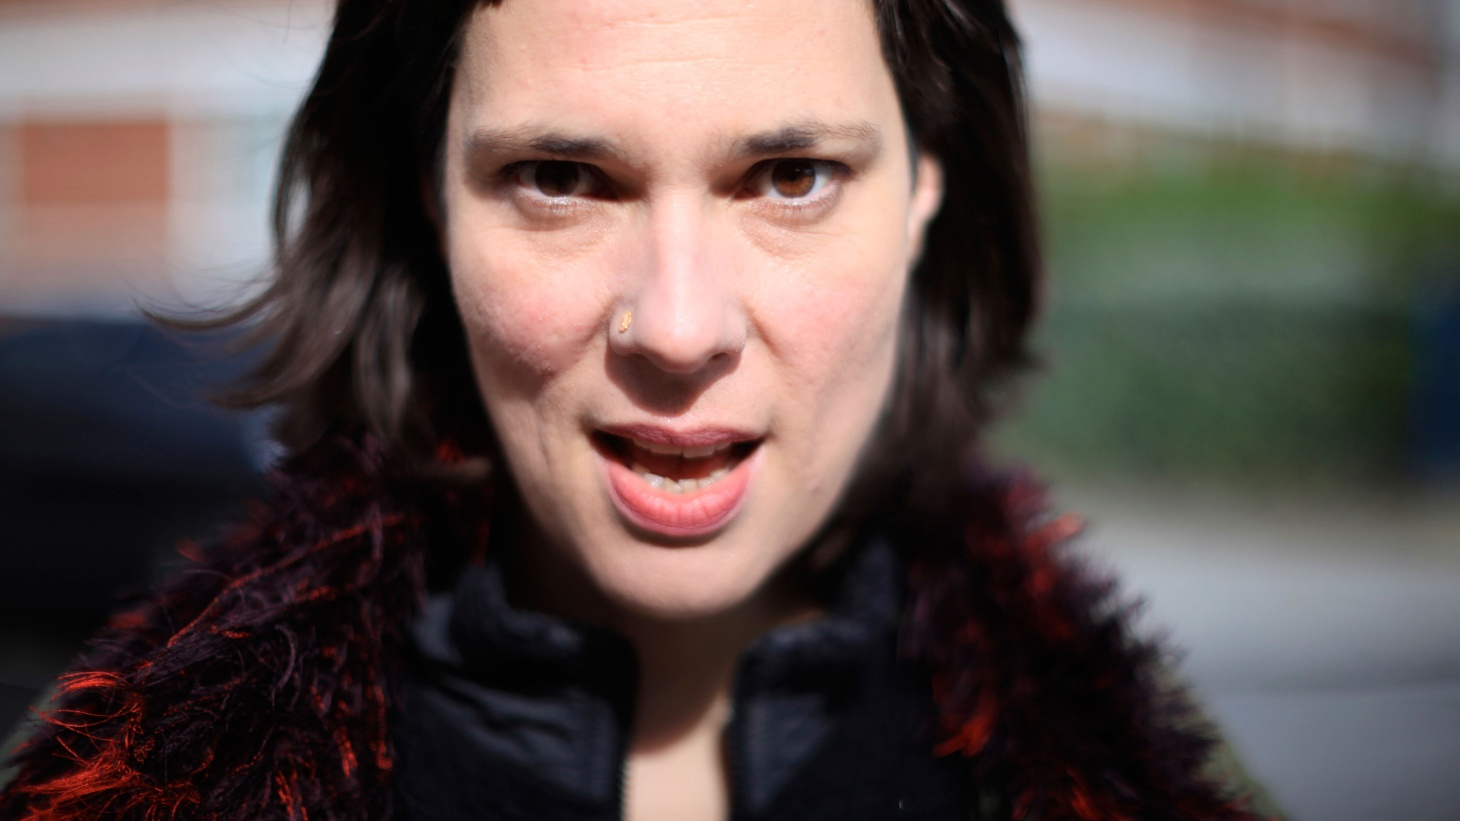 Stereolab's Laetitia Sadier has a new solo album and her groovy sound recalls 70's film scores and features big brass sections and timeless vocals.